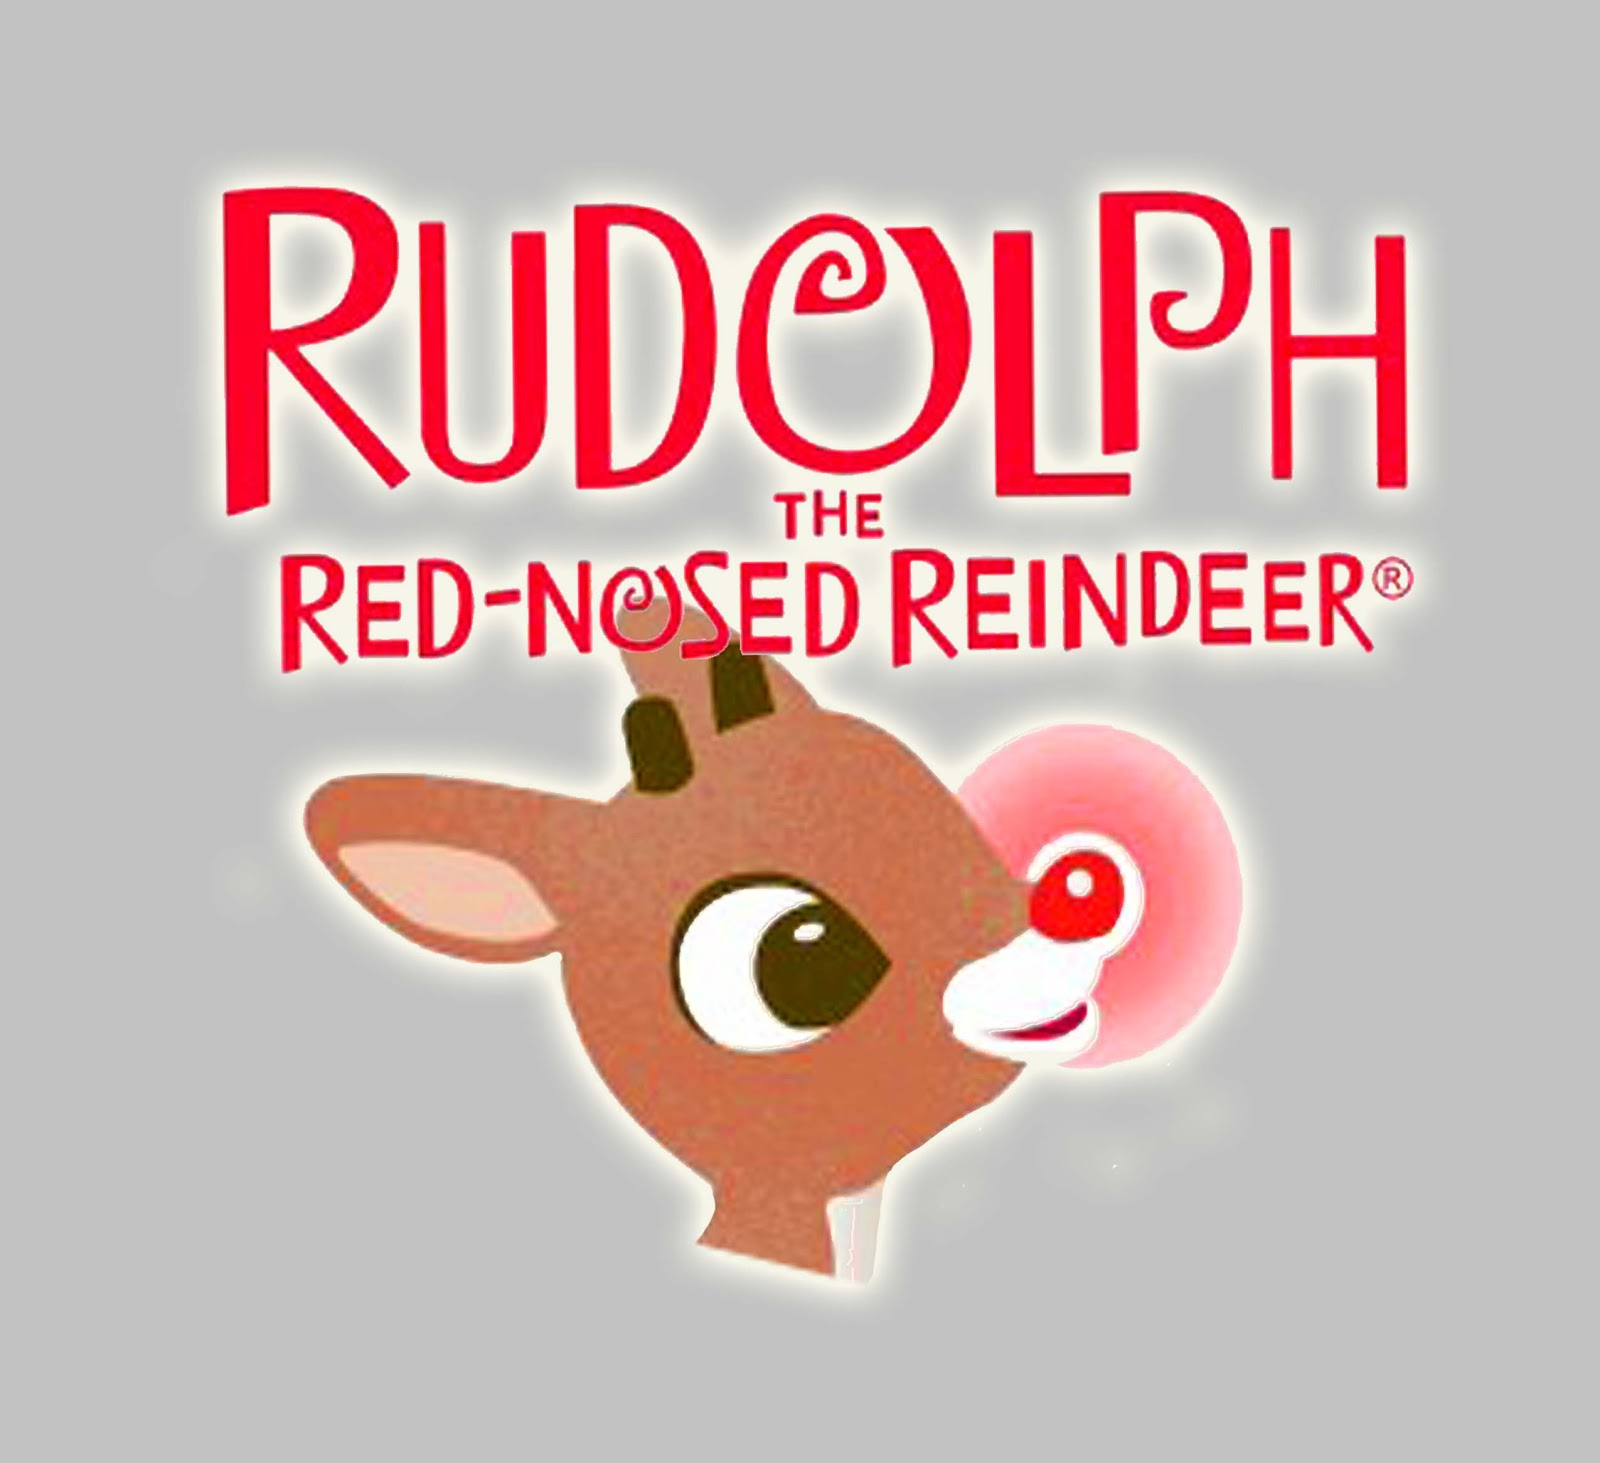 M: Rudolph The Red Nosed